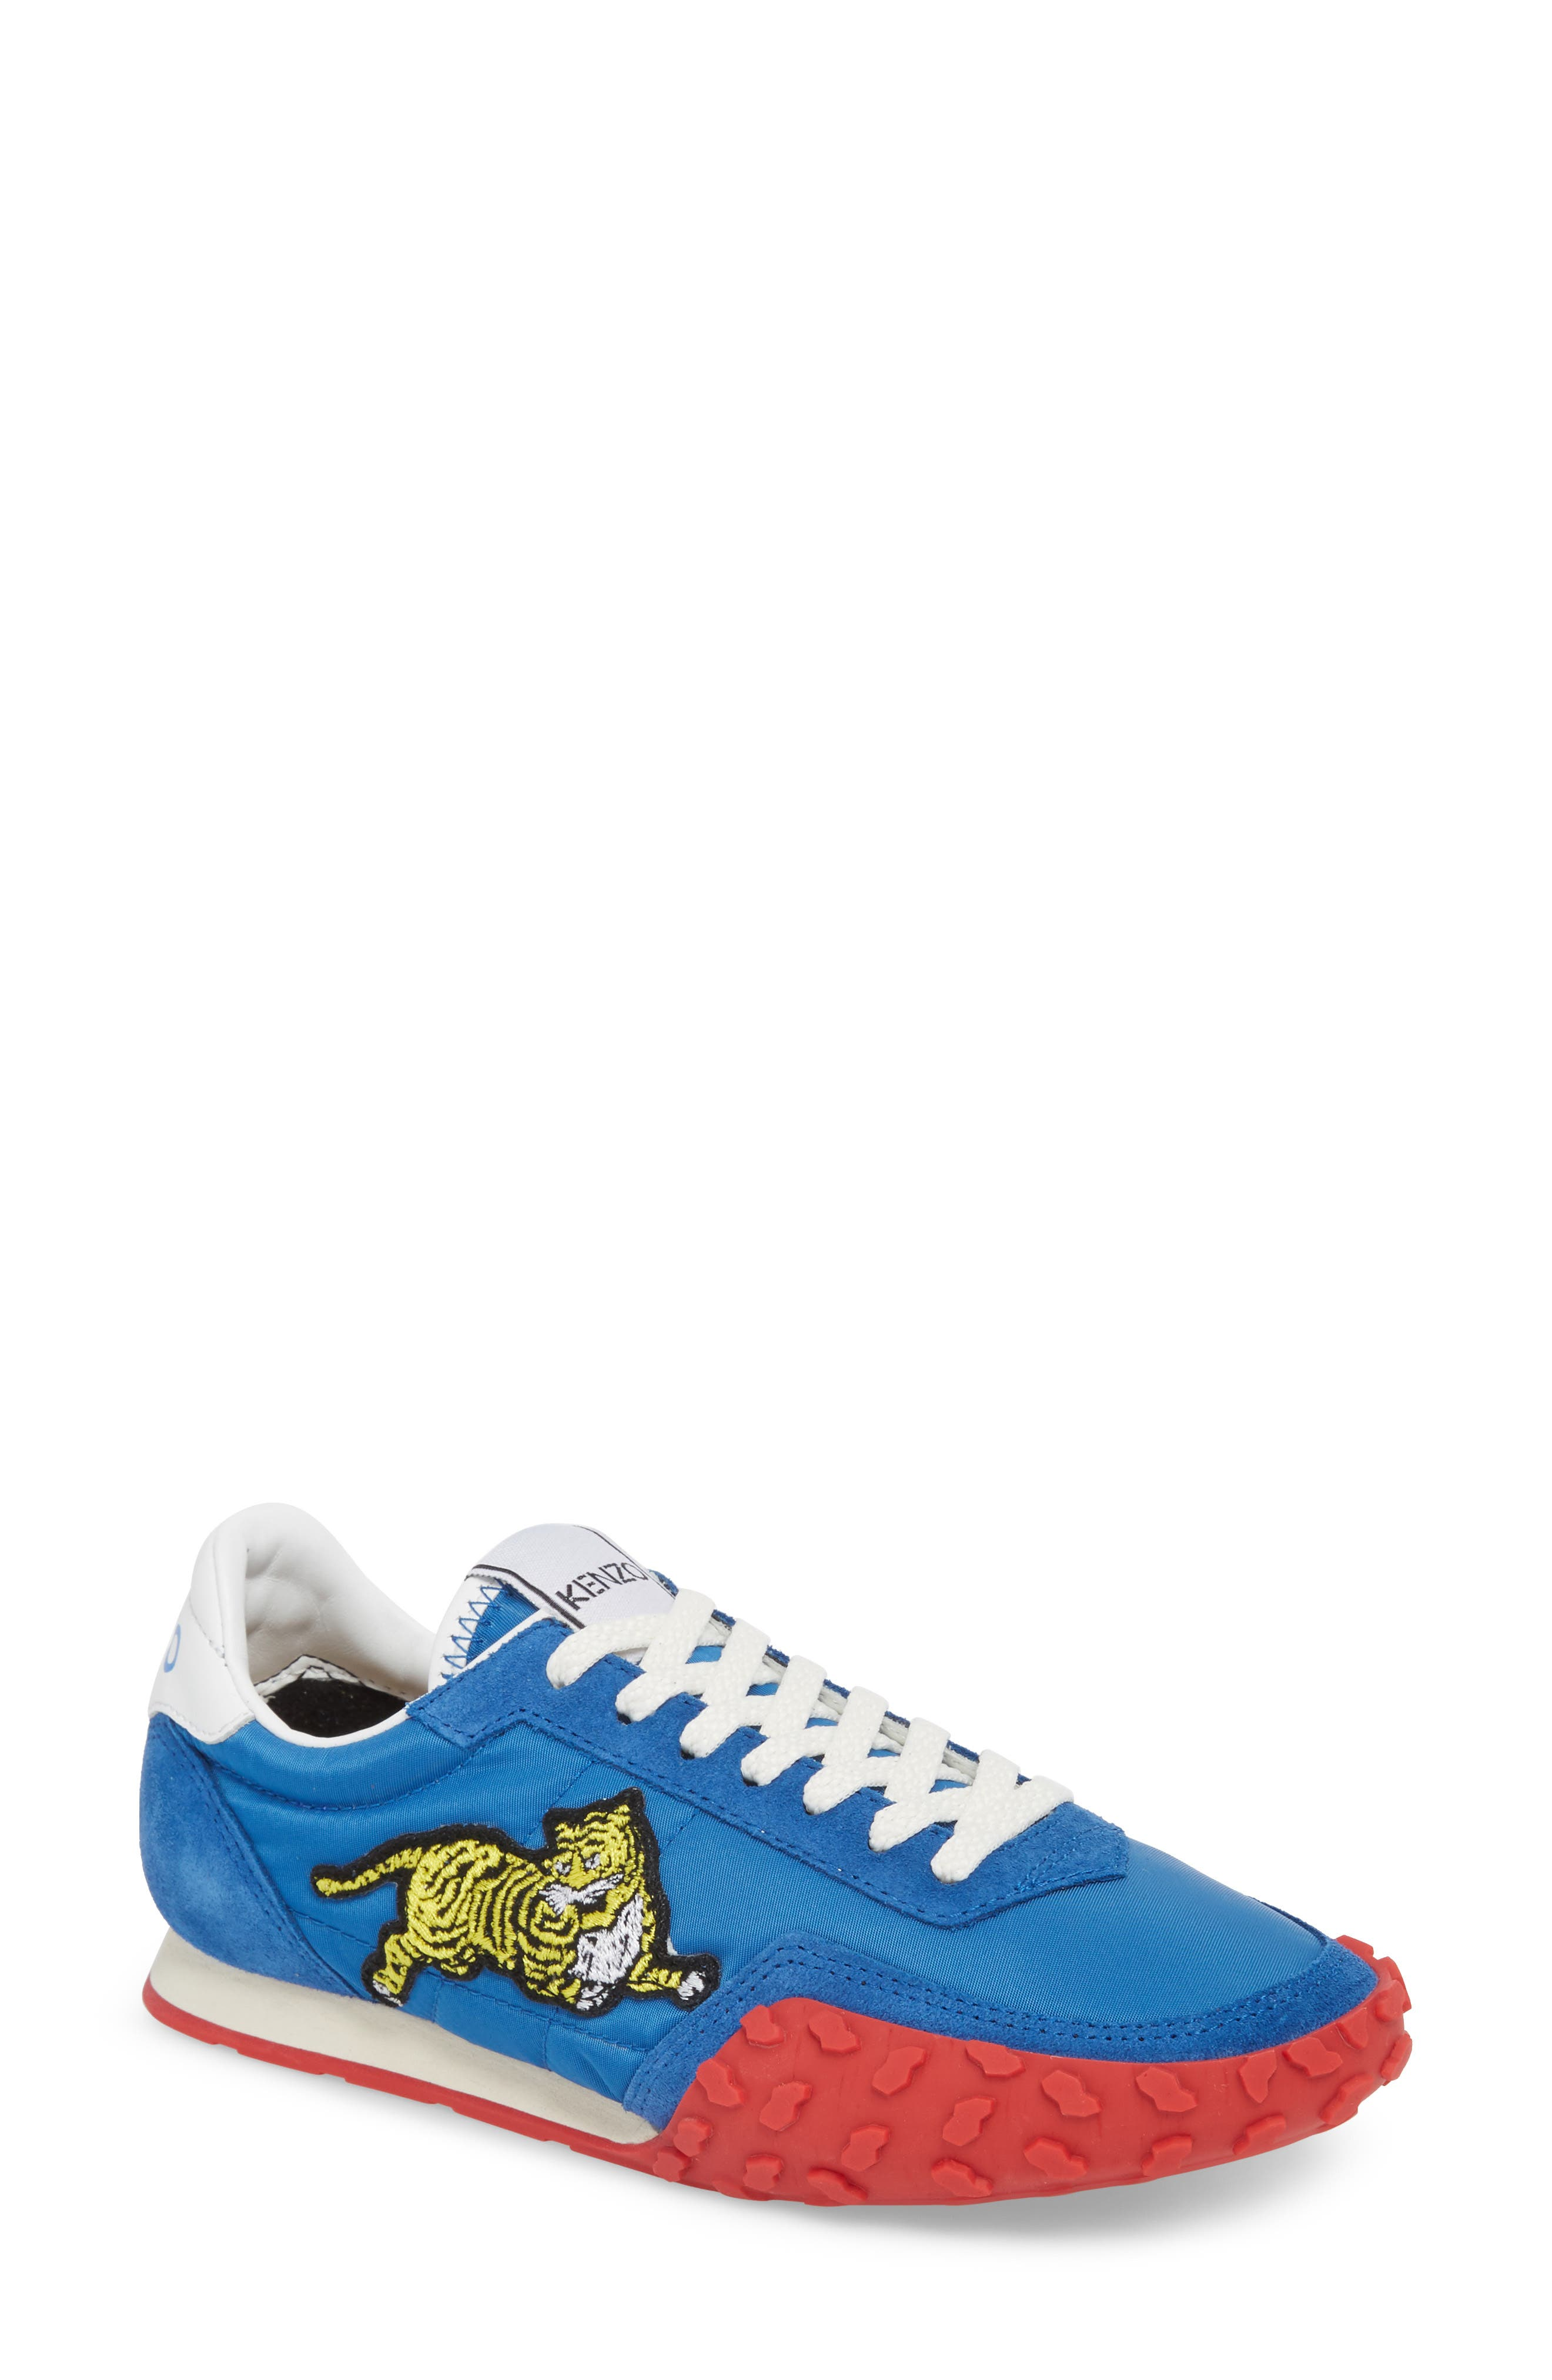 MOVE Sneaker,                             Main thumbnail 1, color,                             BLUE